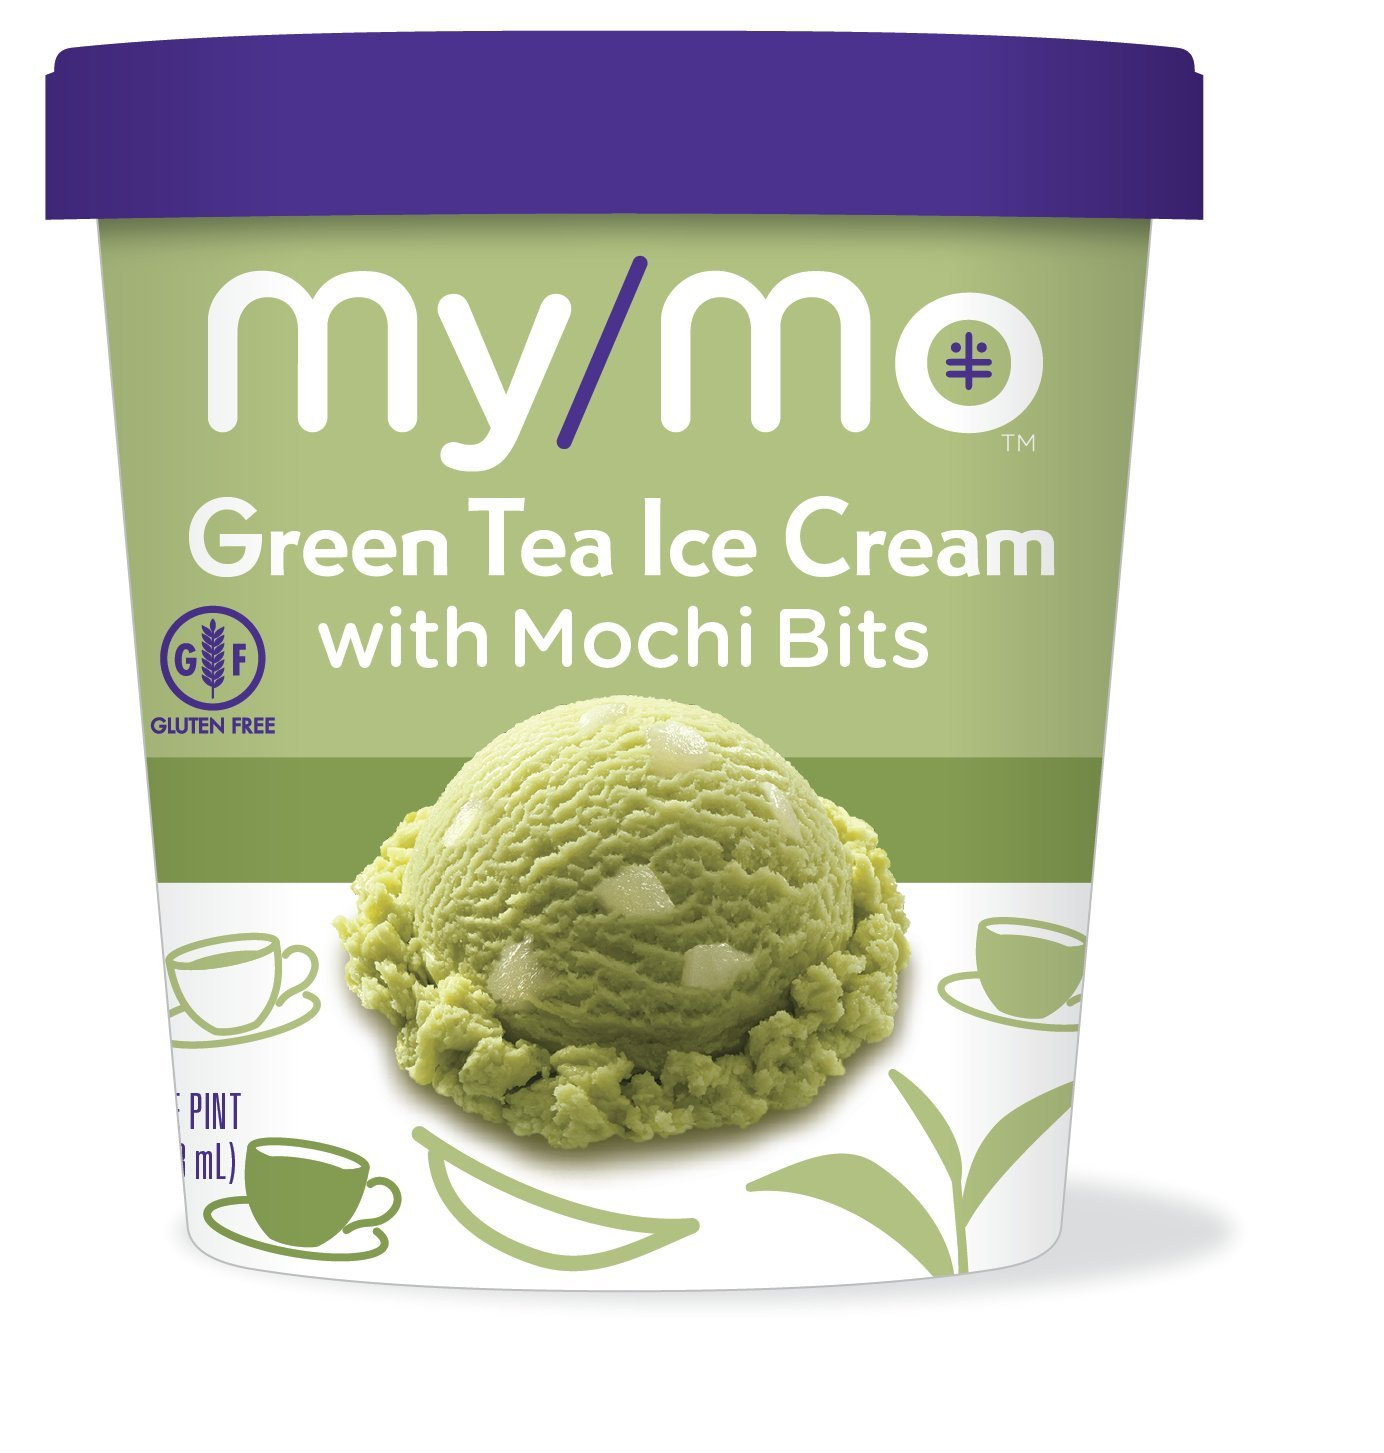 My/Mo Green Tea Ice Cream with Mochi Bits (8 pints) by My/Mo Mochi Ice Cream